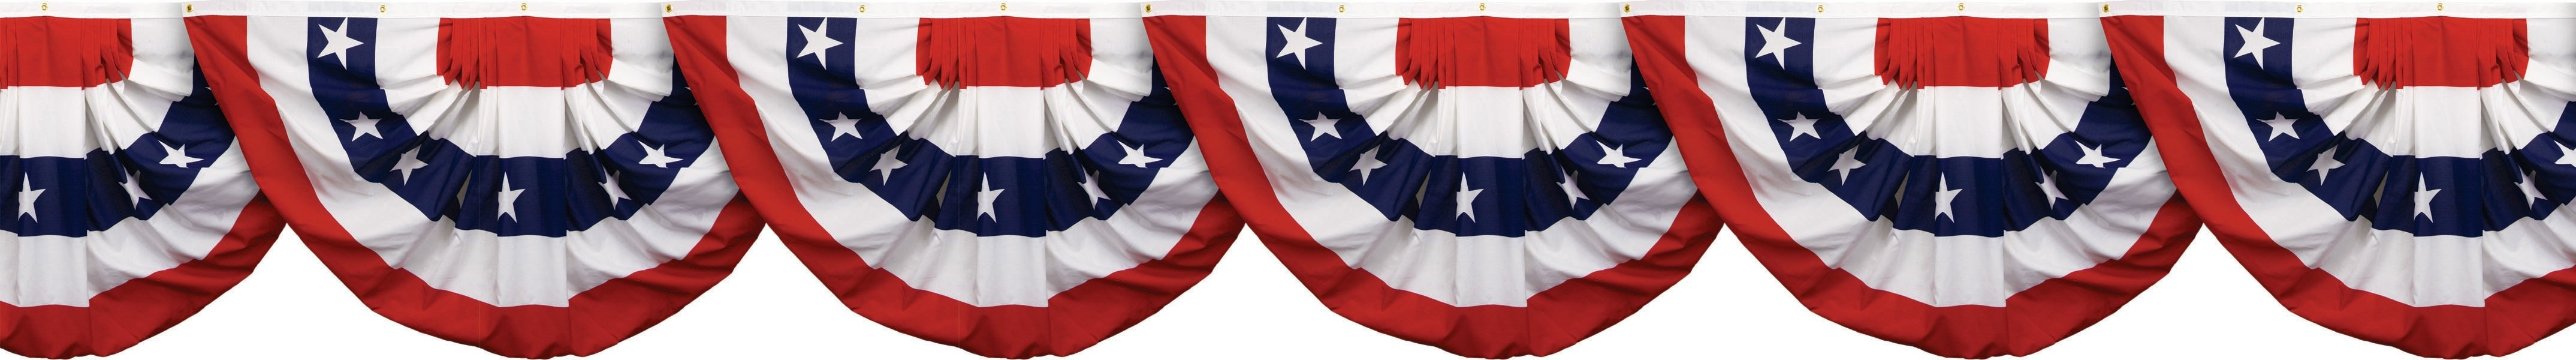 Banners clipart american flag. And banner best business